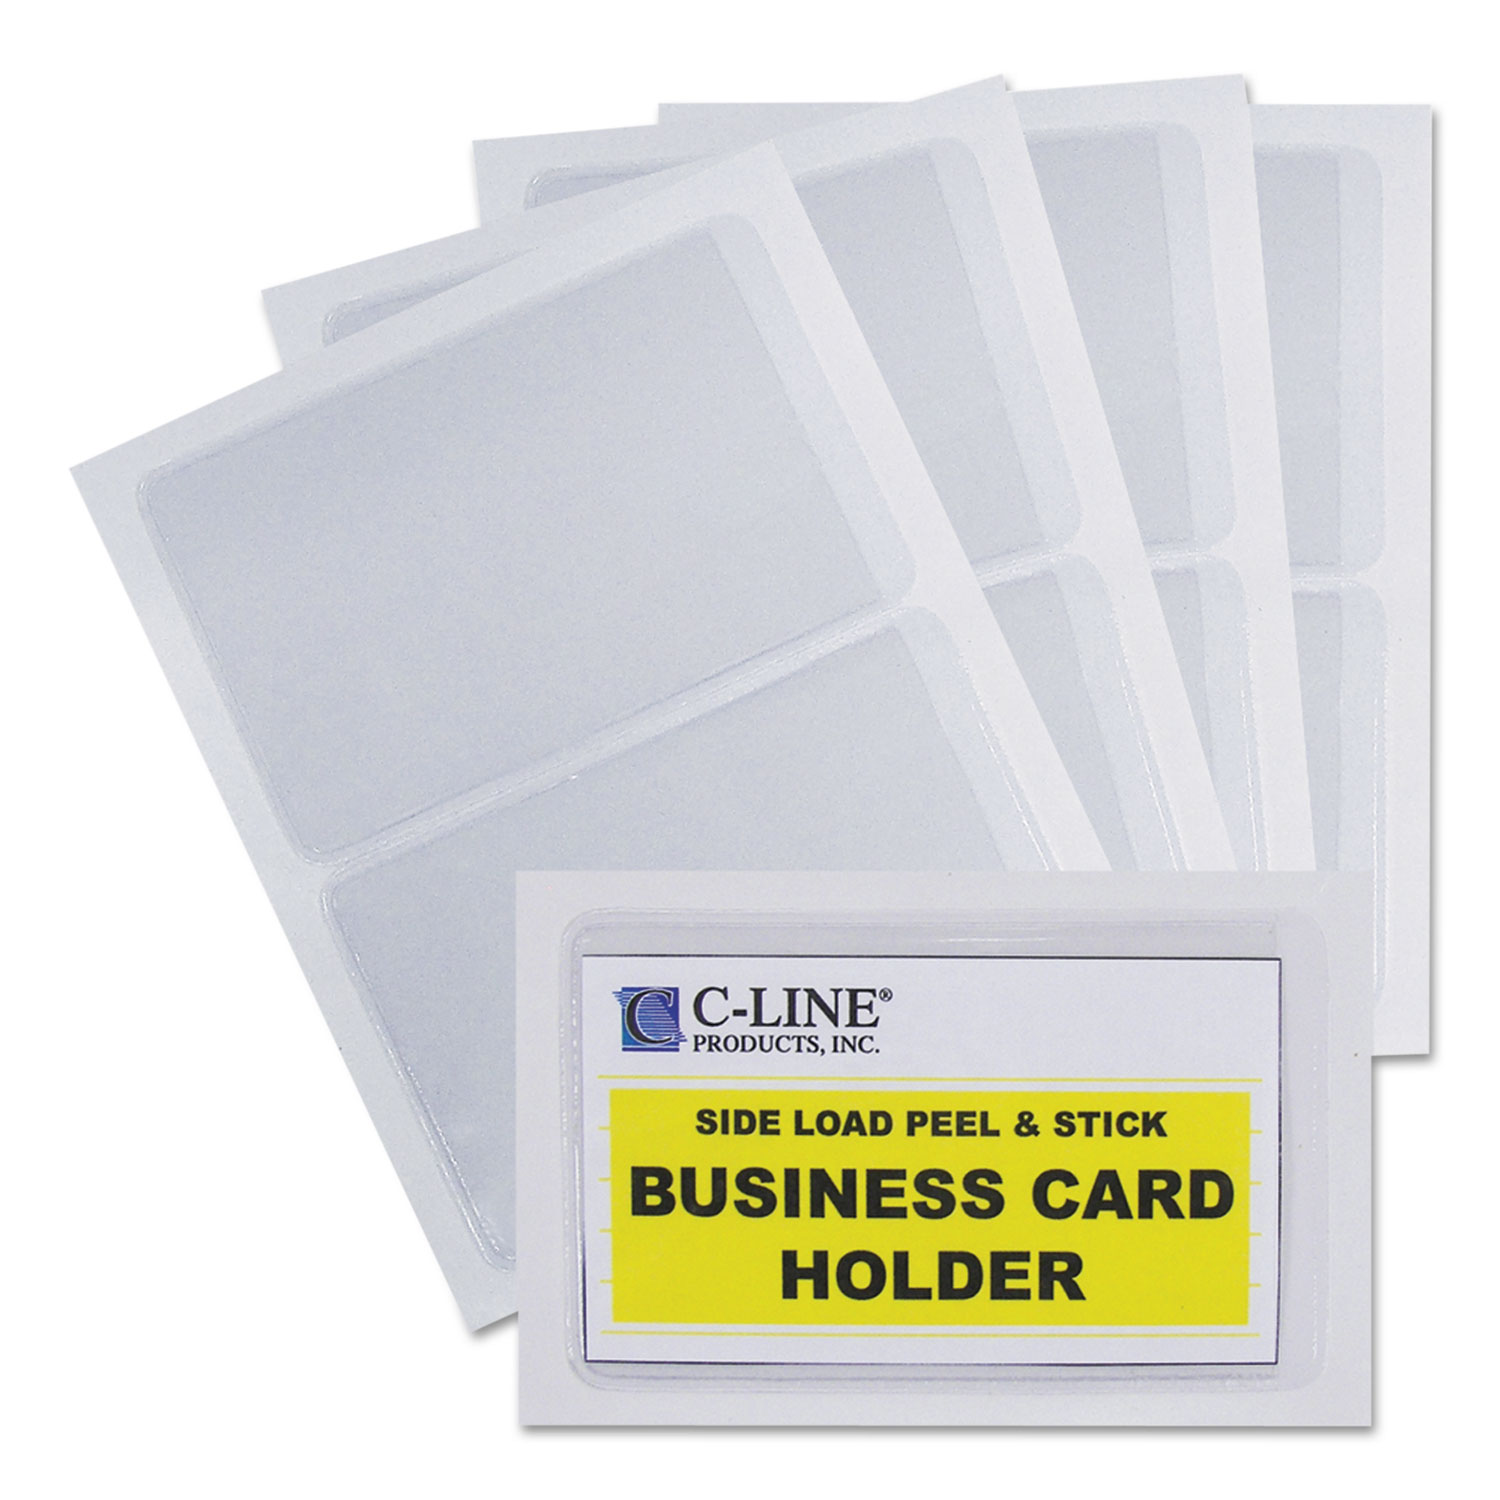 Swingline Standard Staples provide reliable, easy stapling for your fastening needs. Dependable staples set a higher standard for reliable performance, helping keep your office organized and running smoothly.